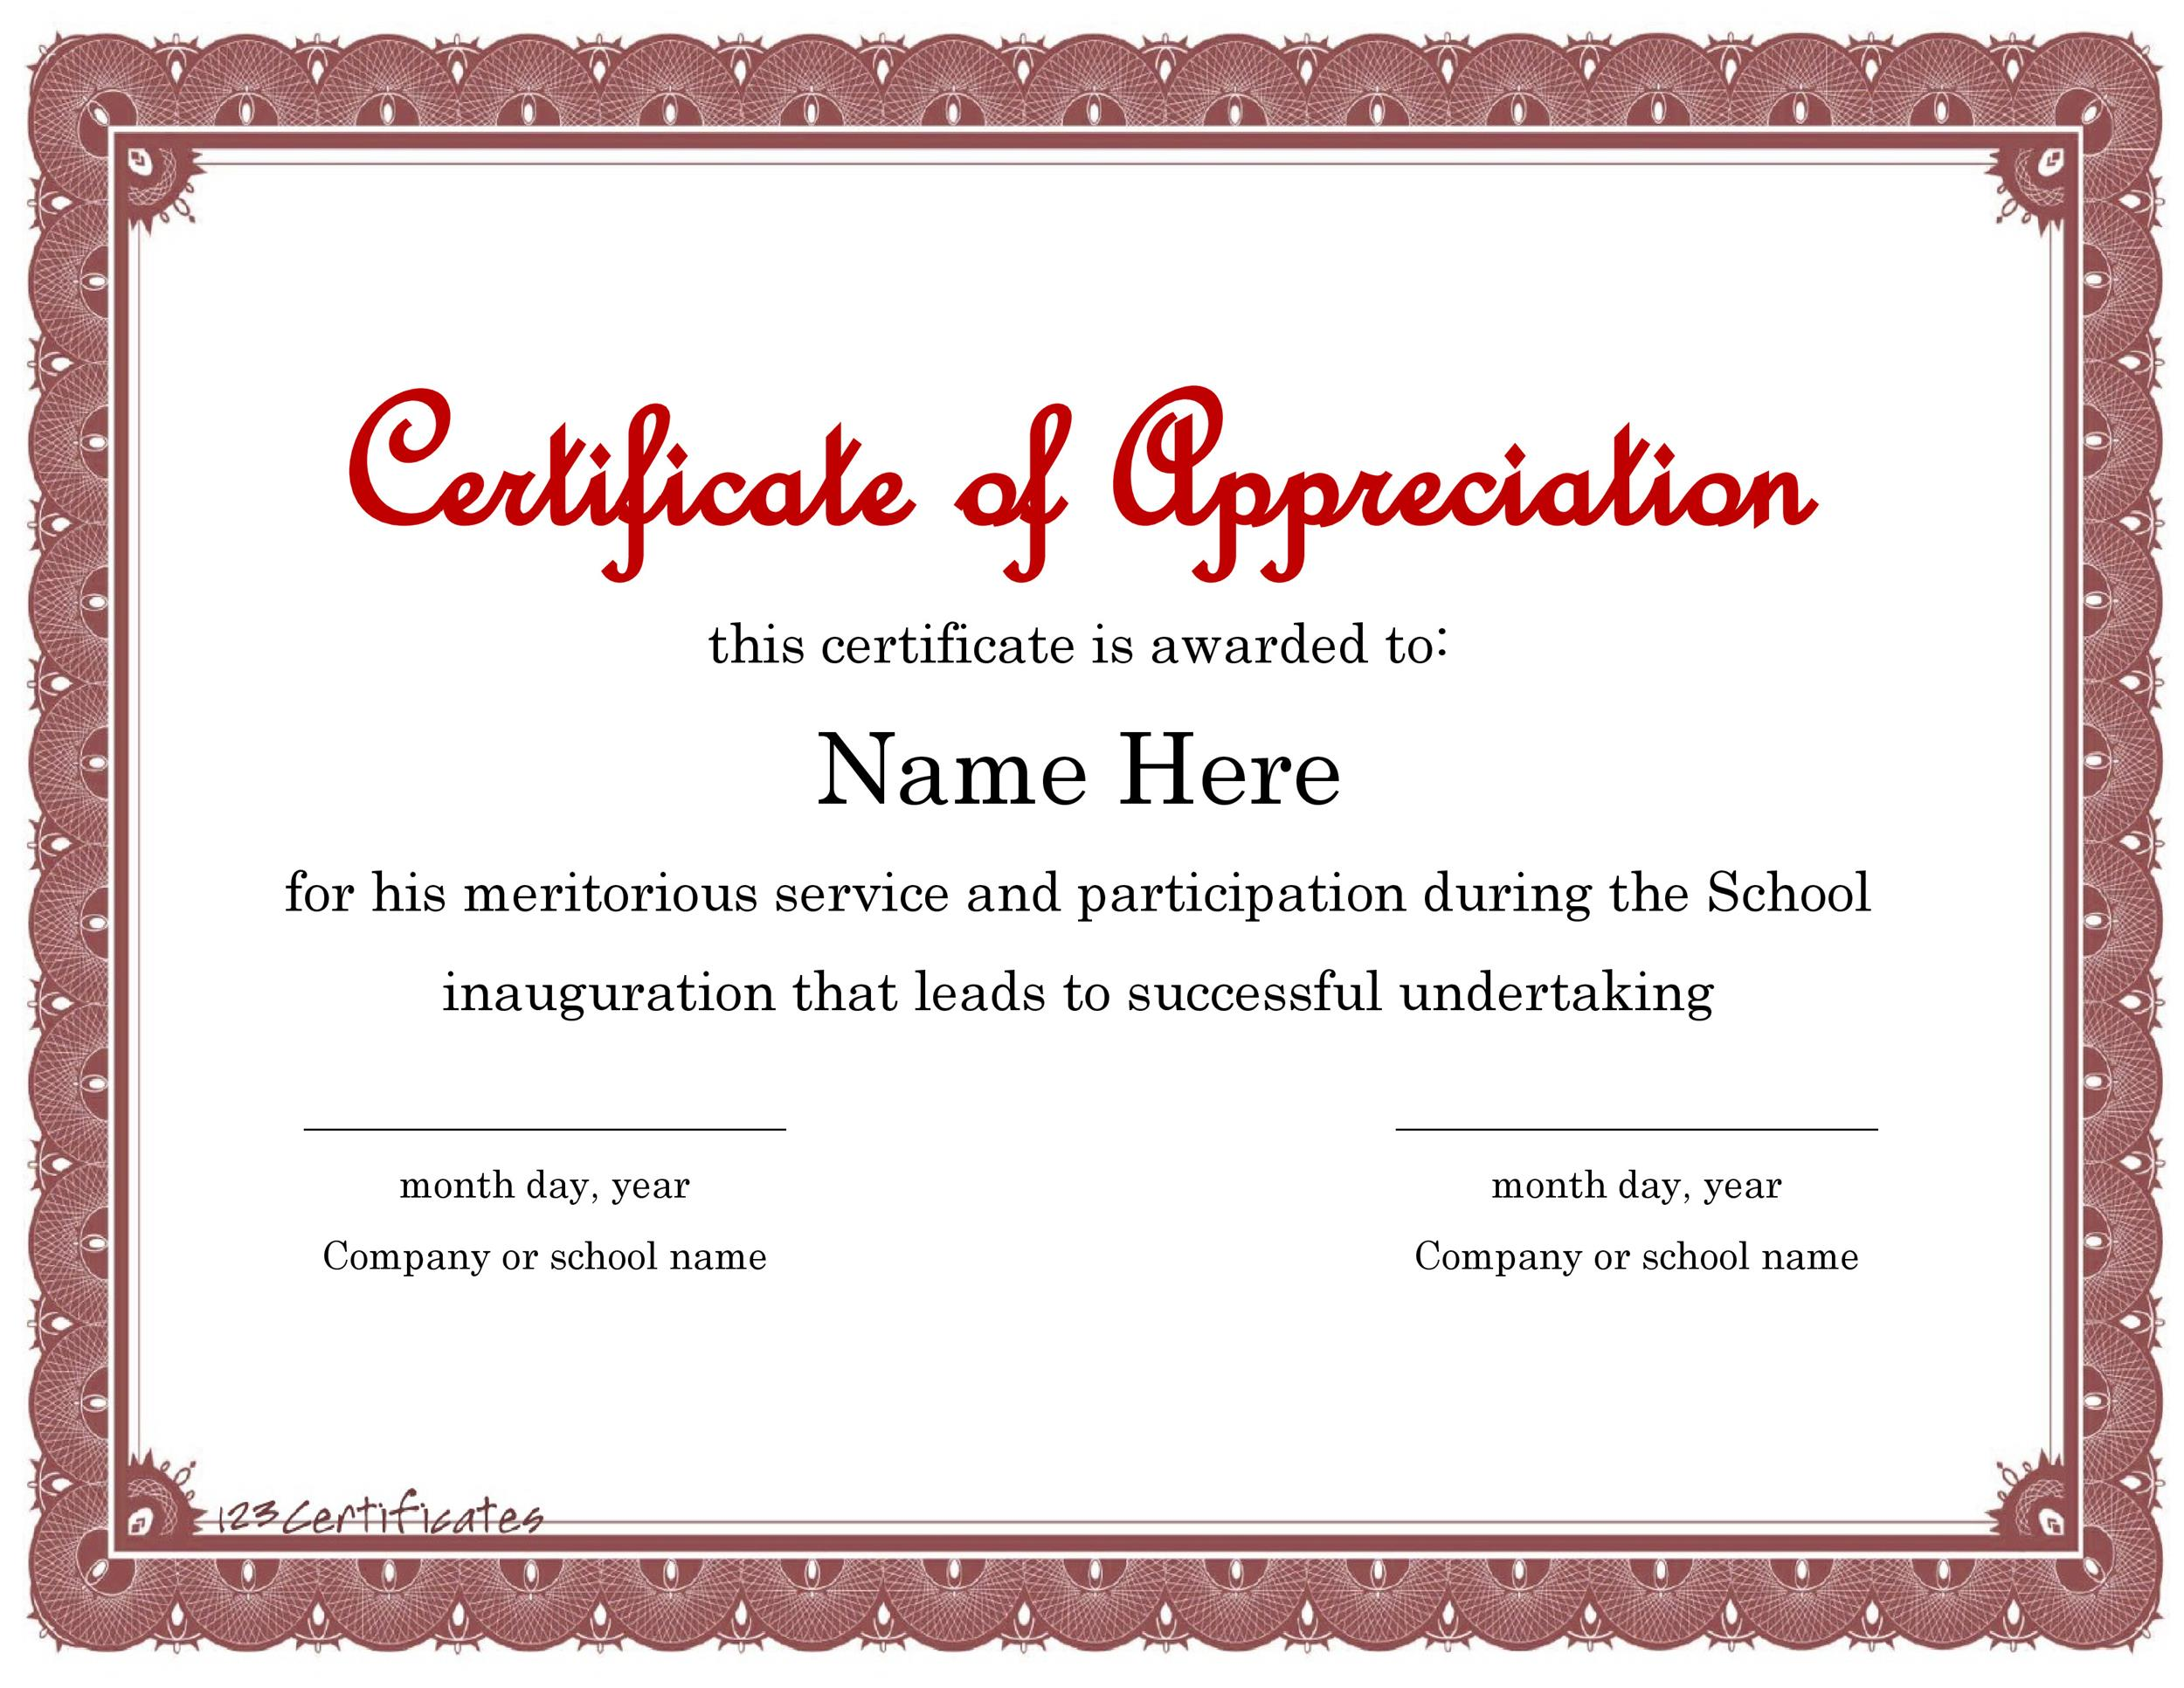 Marvelous Printable Certificate Of Appreciation 01 On Certificate Of Appreciation Wordings